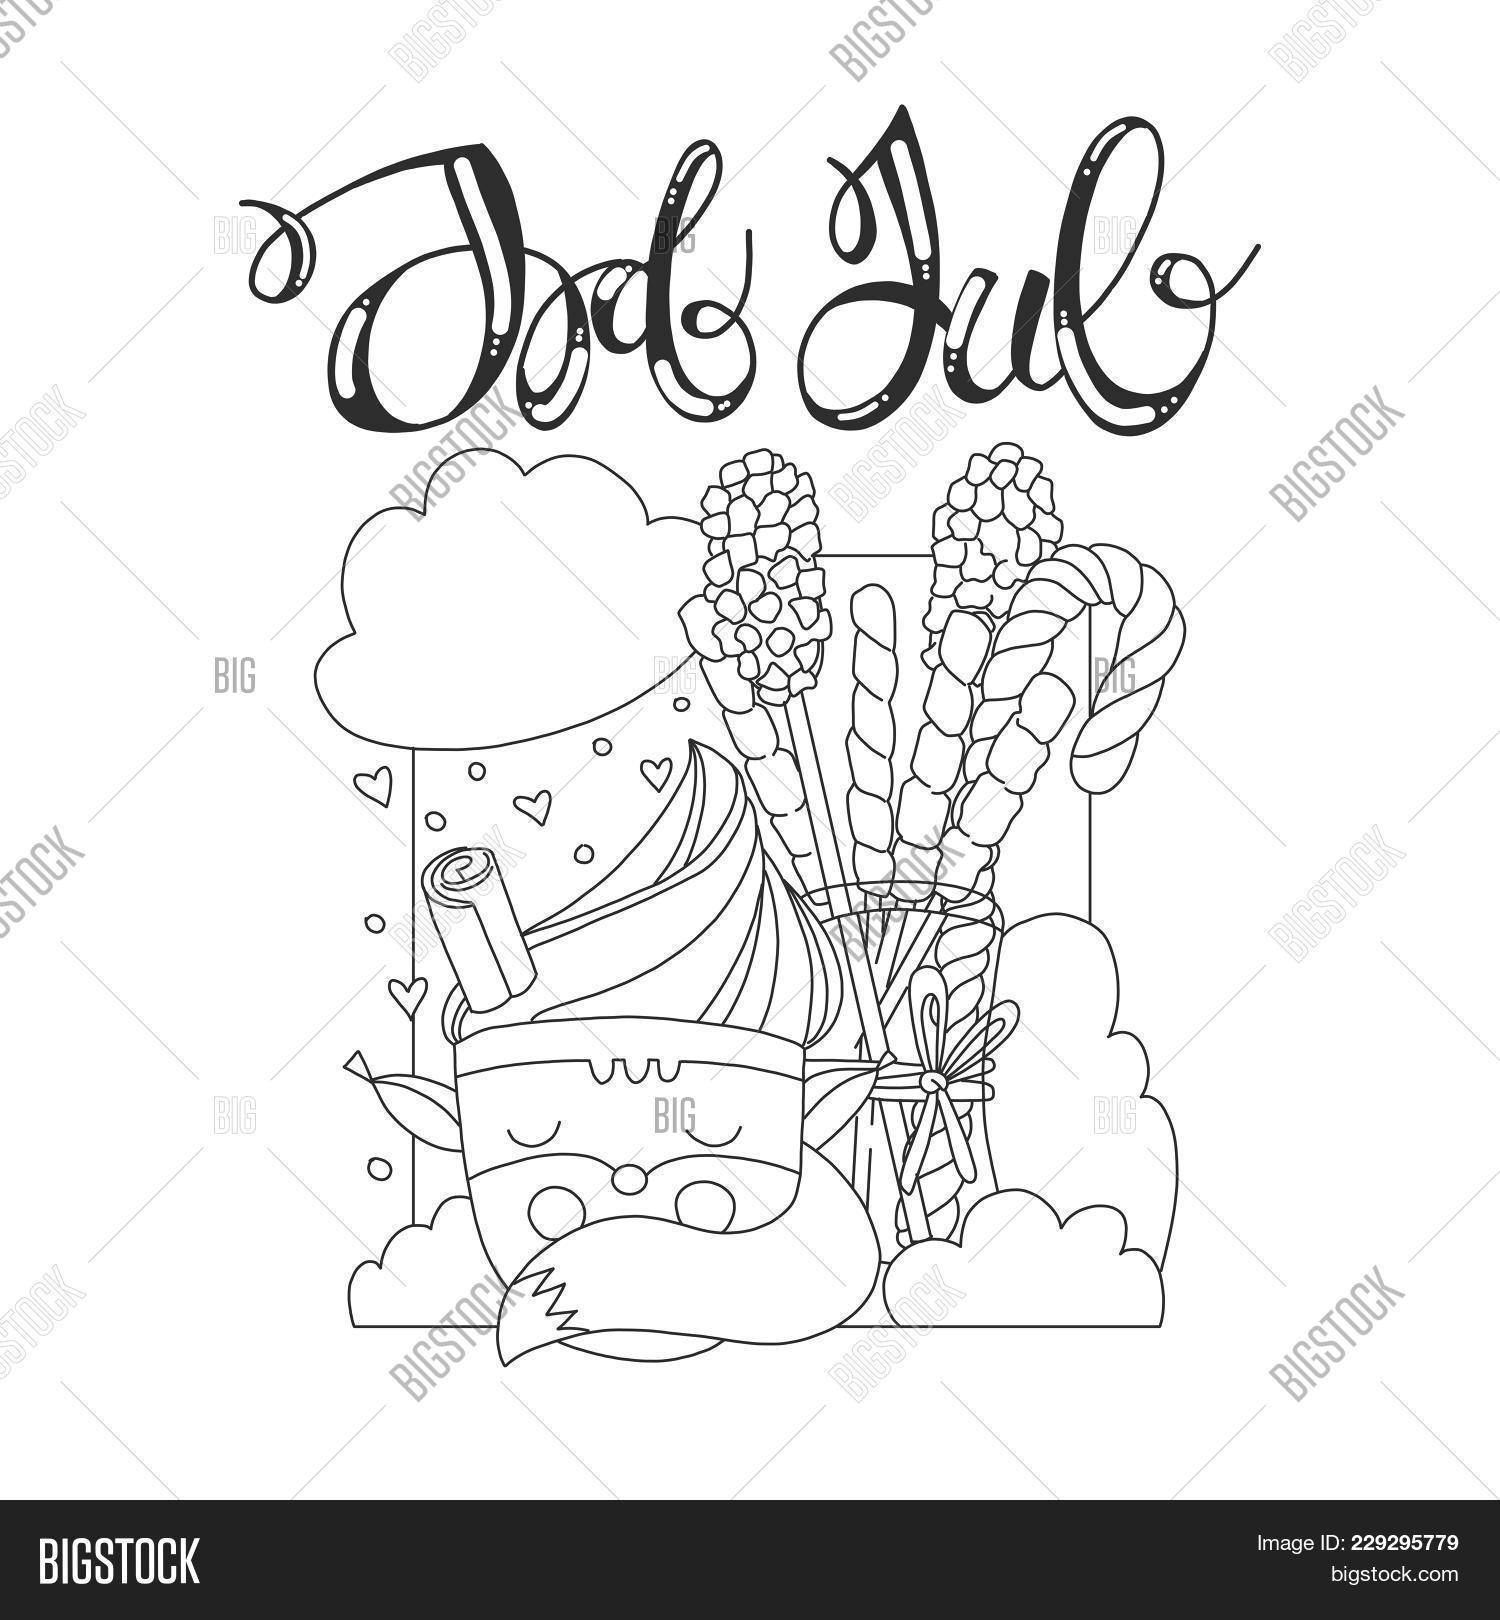 Coloring Page With Christmas Topic Christmas Card With Cartoon Cup In Form Of Fox